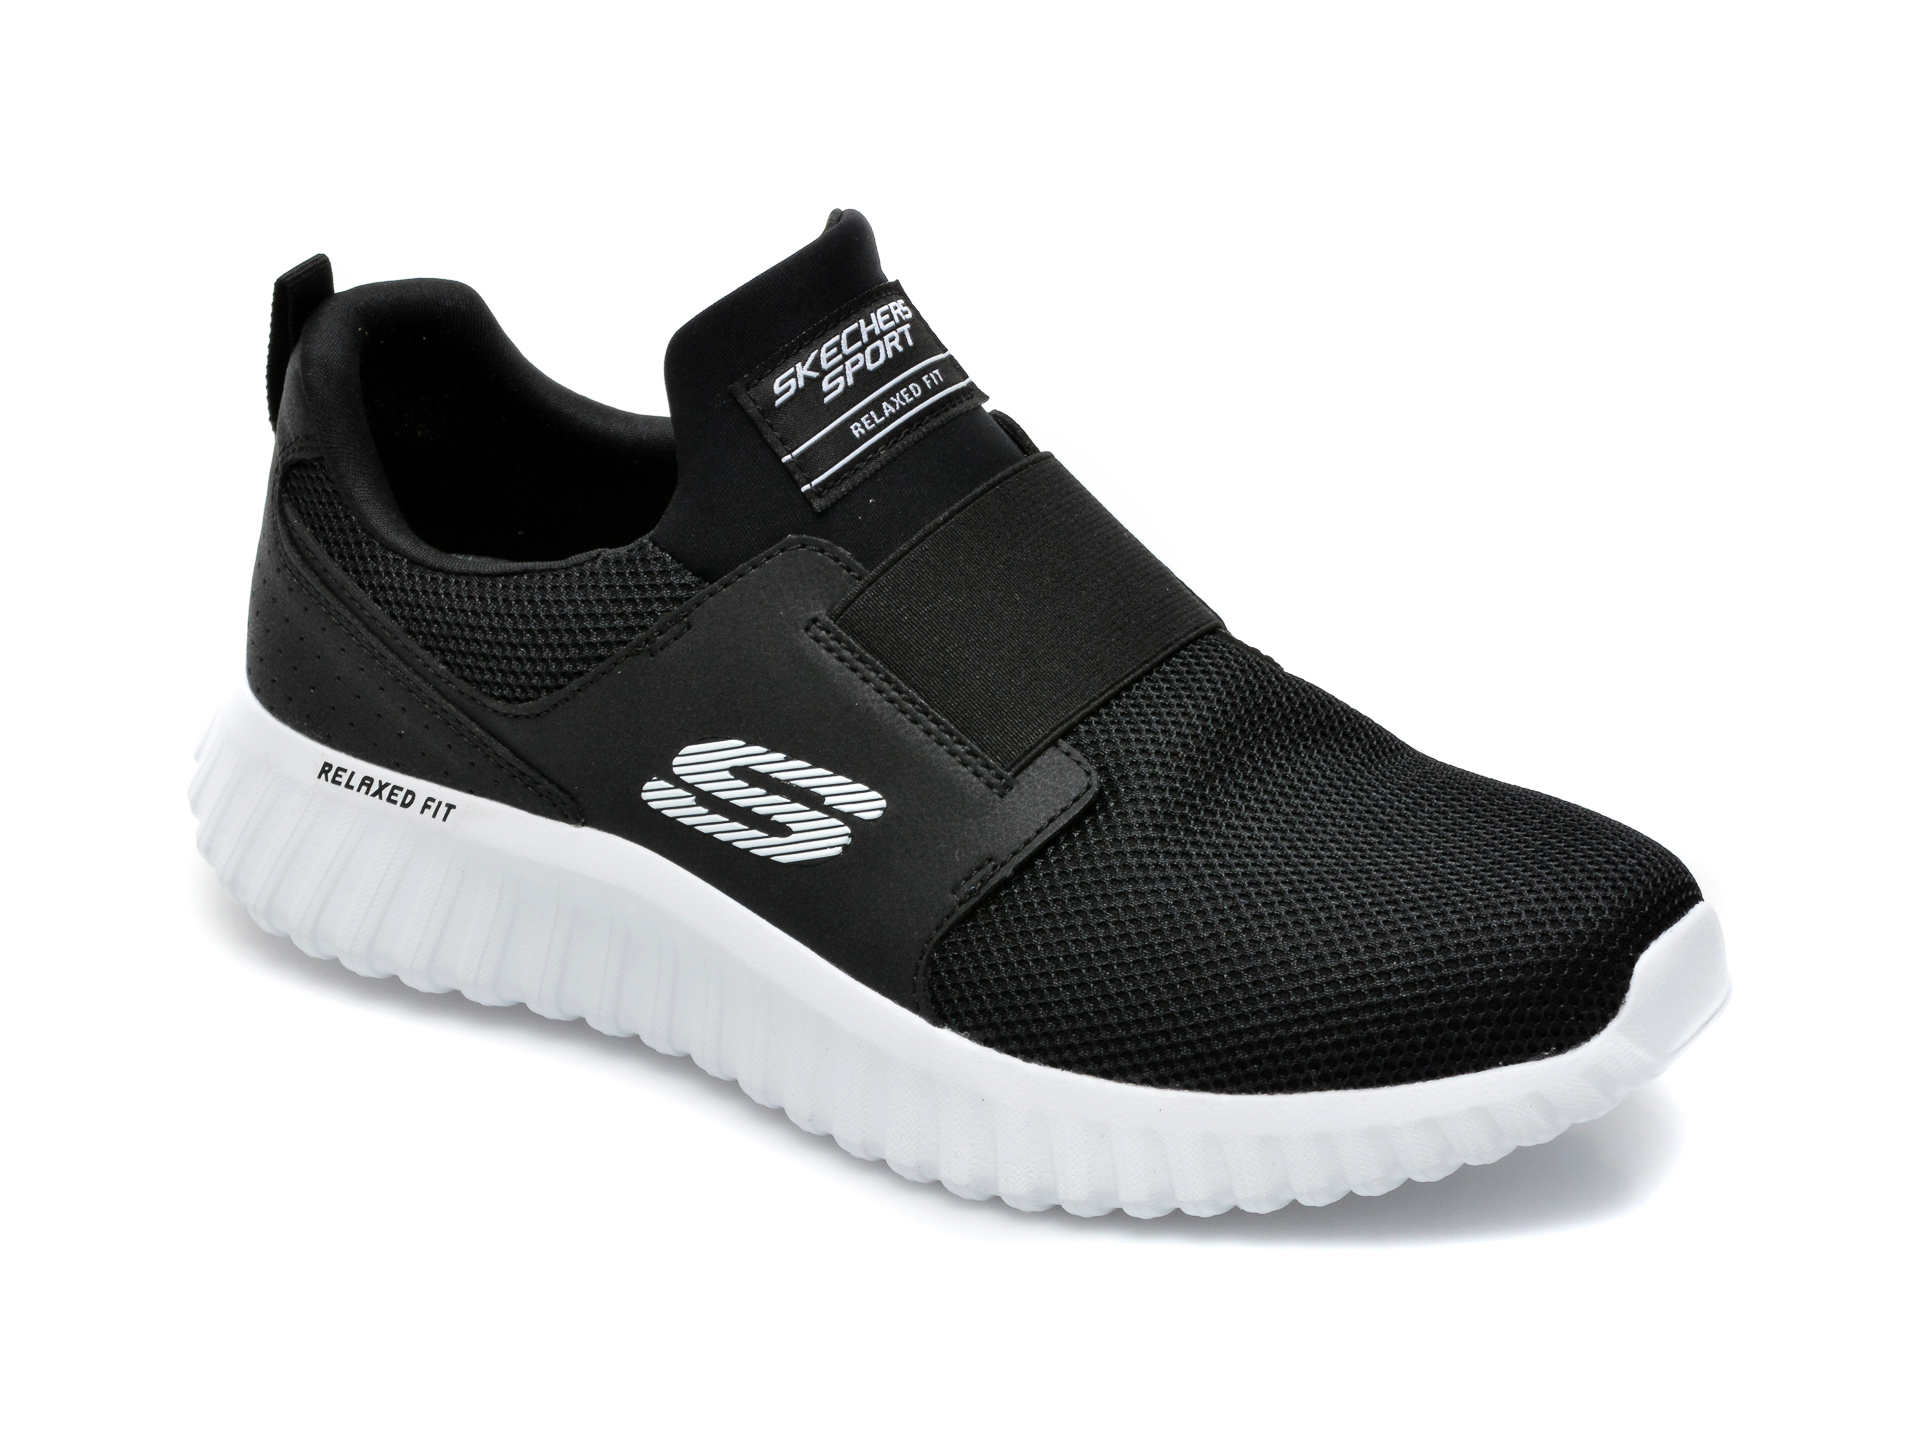 Pantofi sport SKECHERS negri, Depth Charge 2.0, din material textil imagine